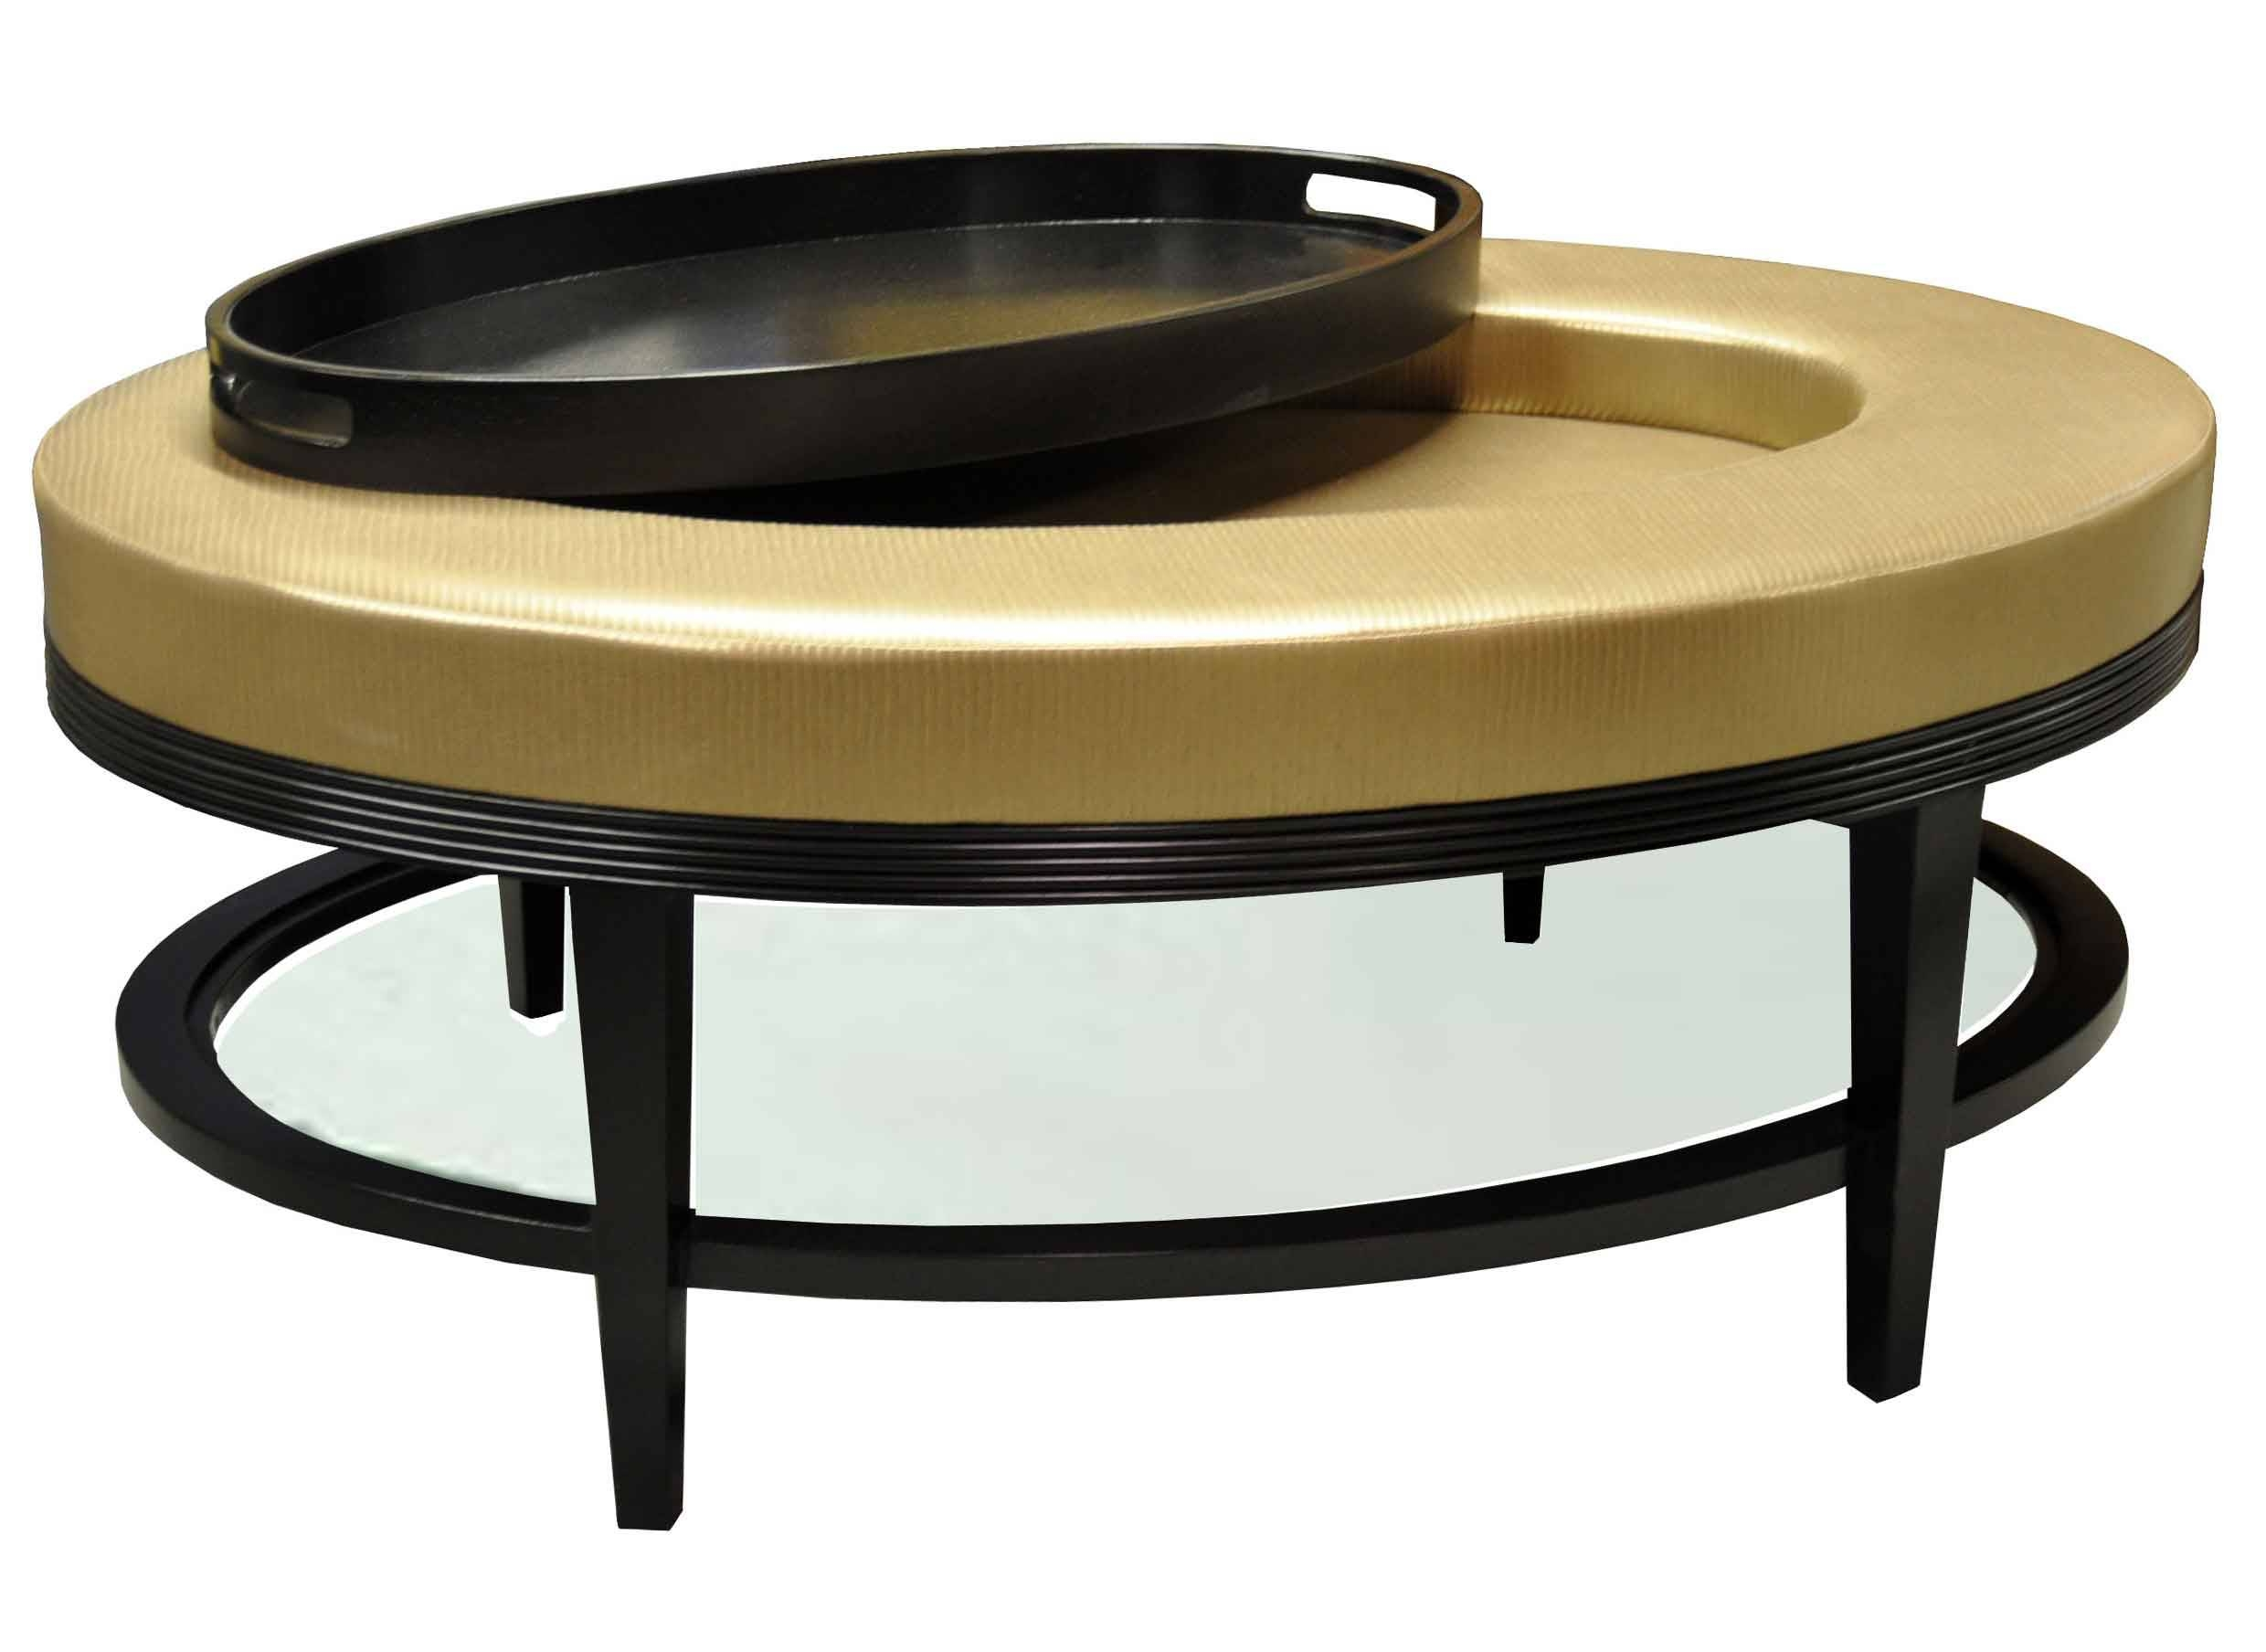 Coffee Table Trays. Coffee Table Amazing Upholstered Ottoman With in Round Coffee Table Trays (Image 9 of 30)